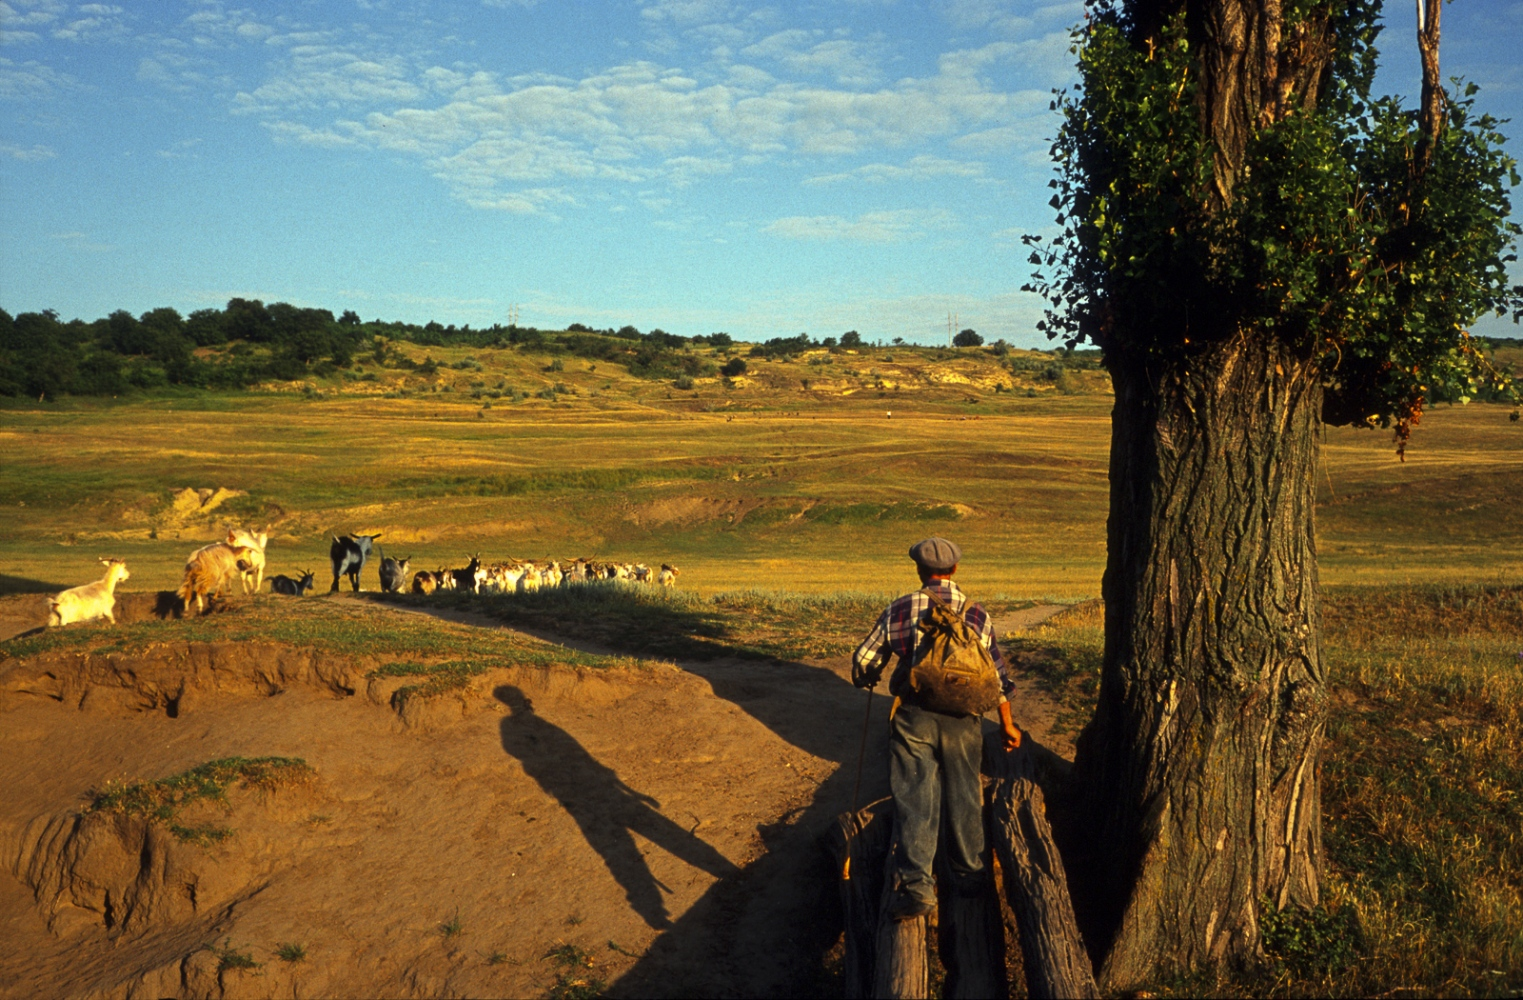 A shepherd takes his flock into the hills to graze in central Moldova.